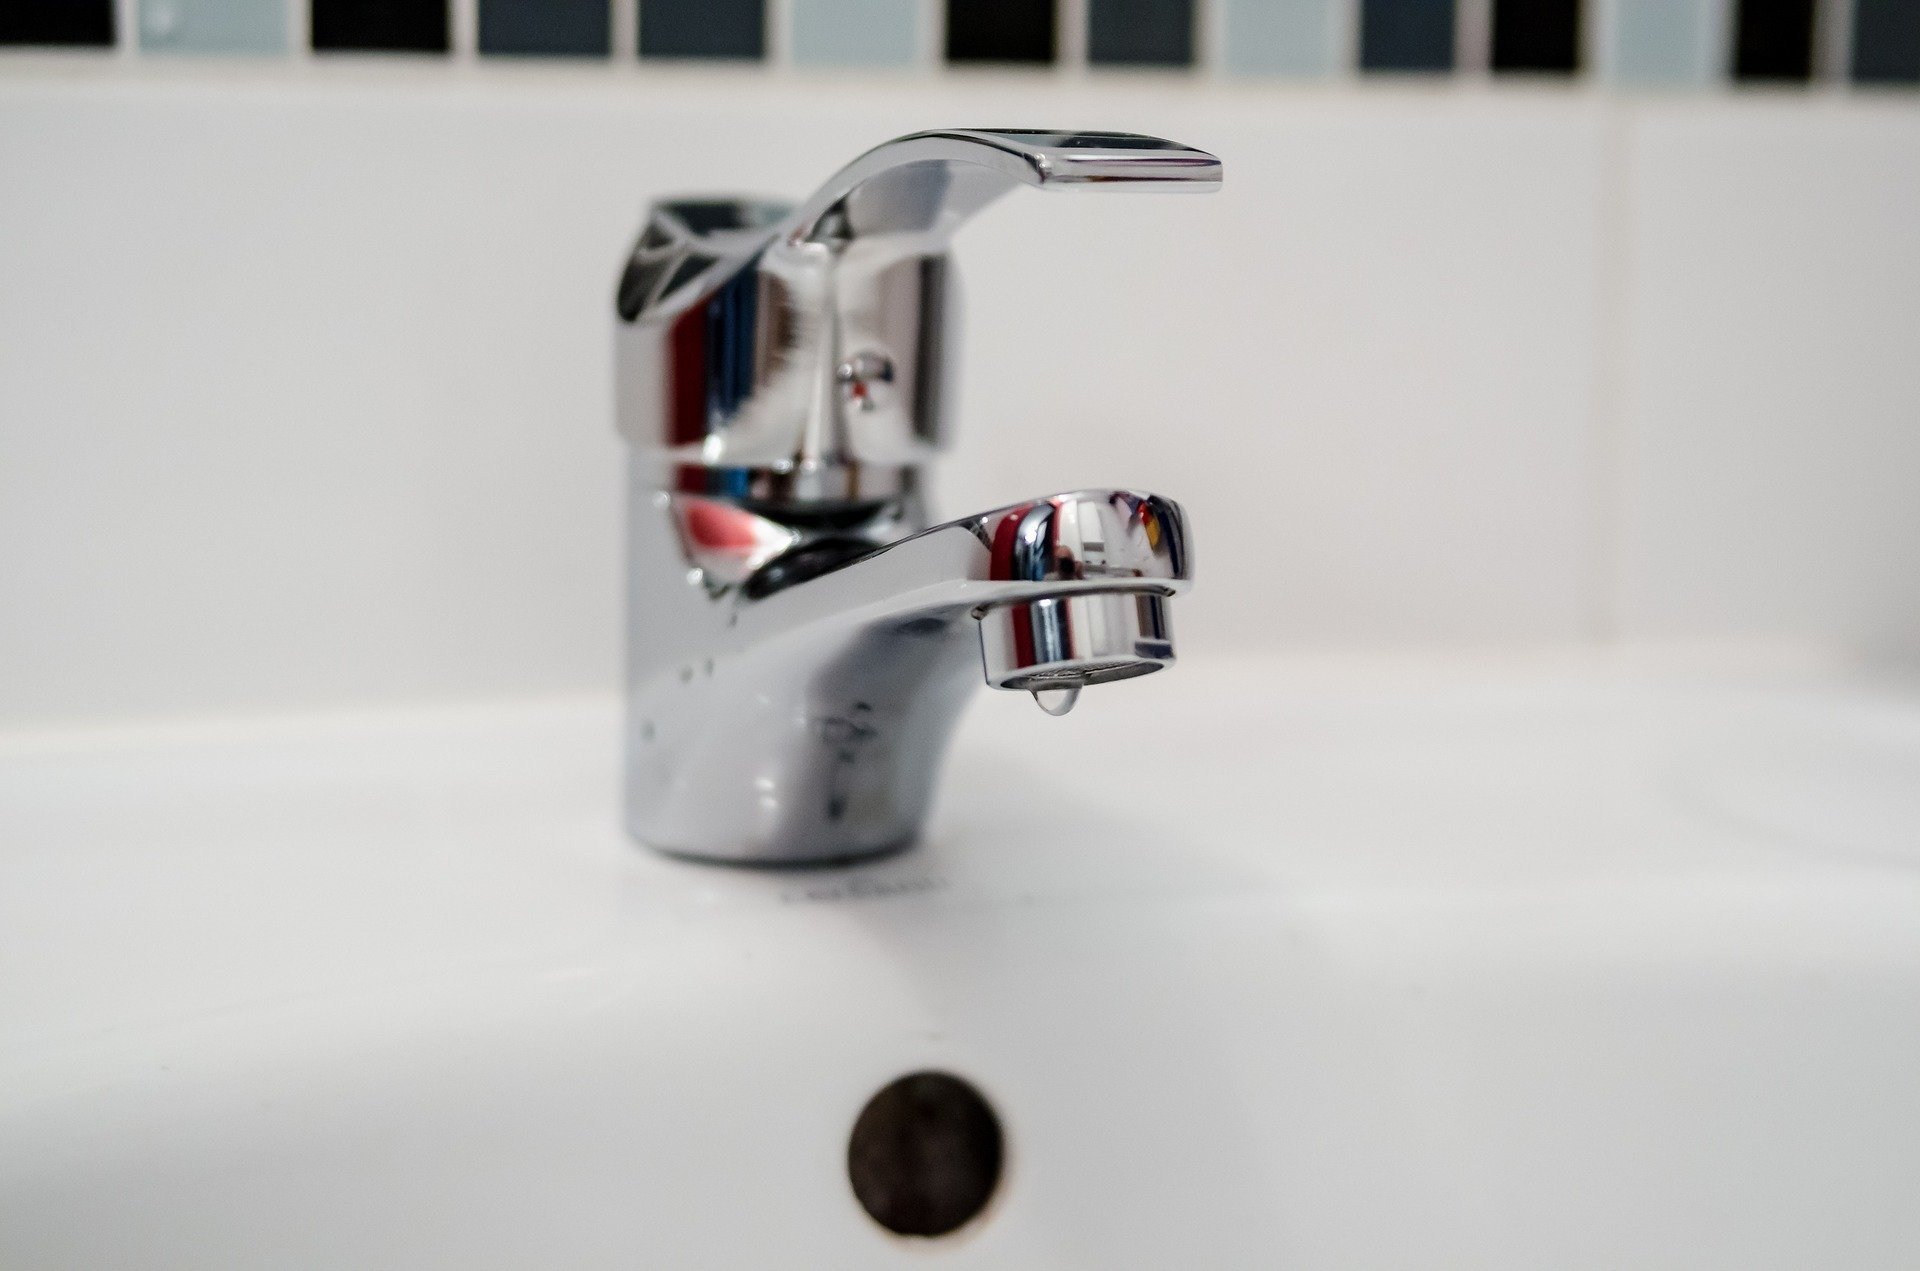 A Super Plumber - Repairs for bathtubs - showers - sinks - faucets